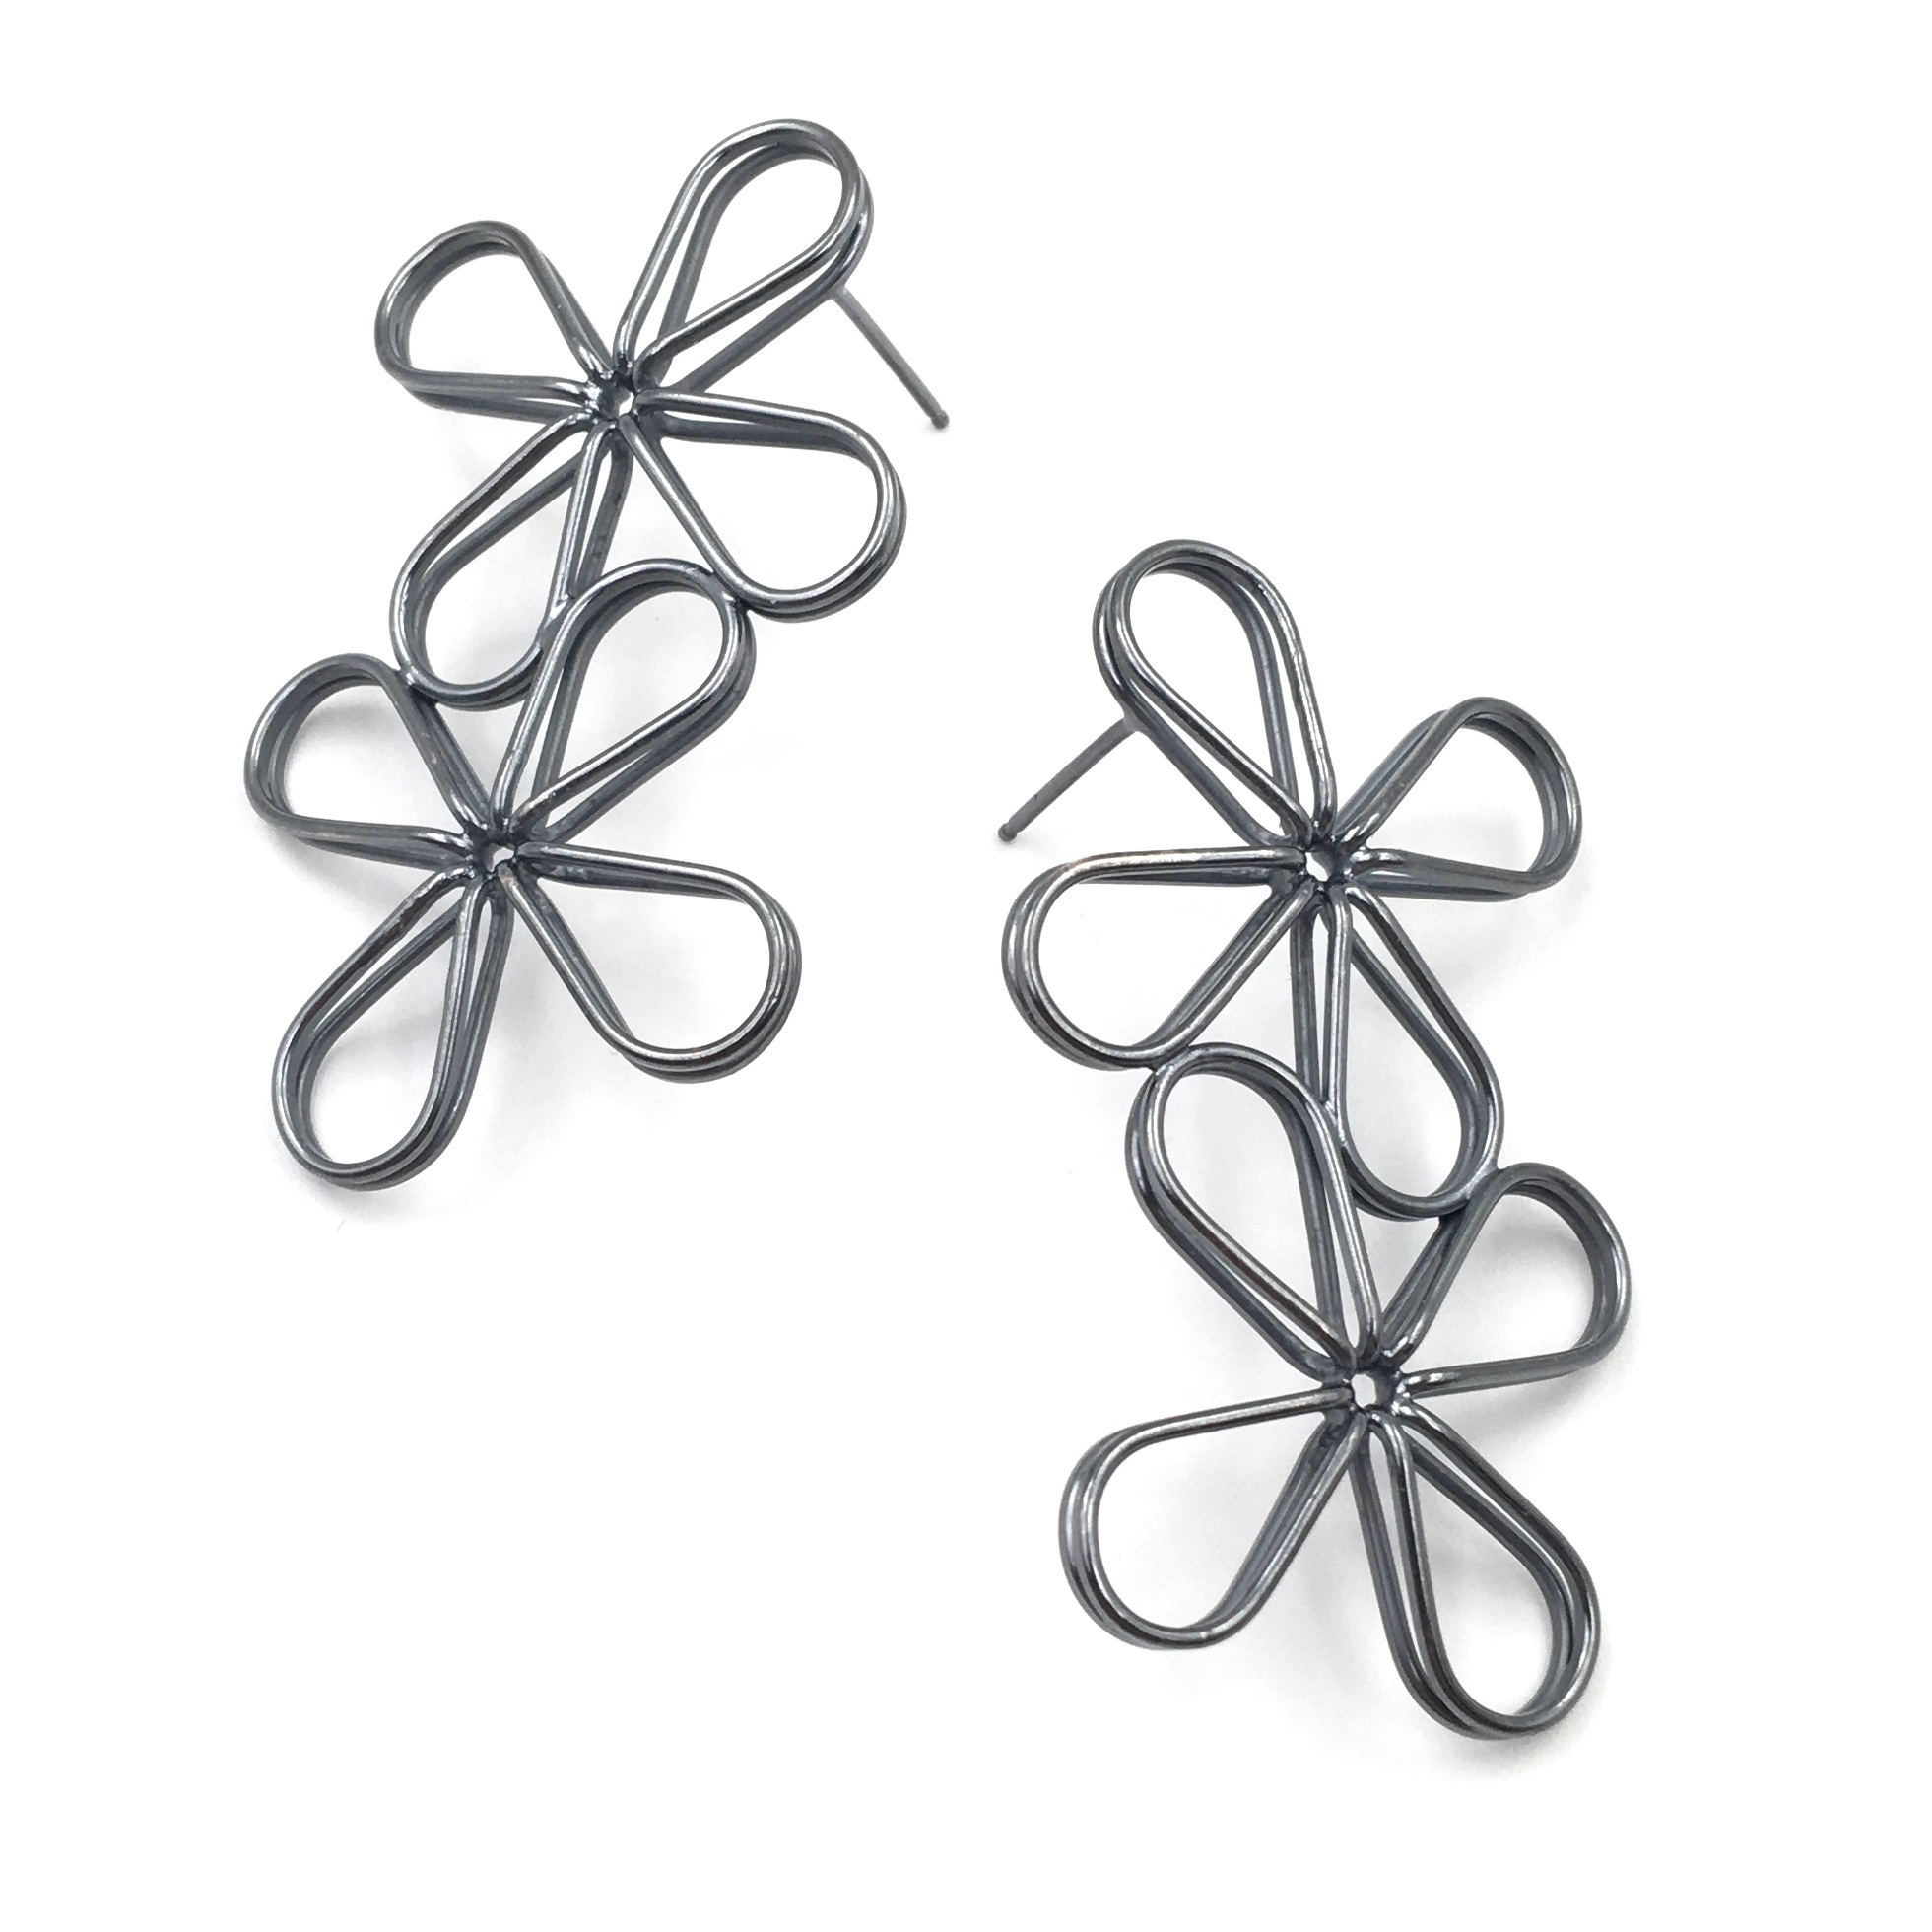 DOUBLE FLORAL EARRINGS  Oxidized sterling silver